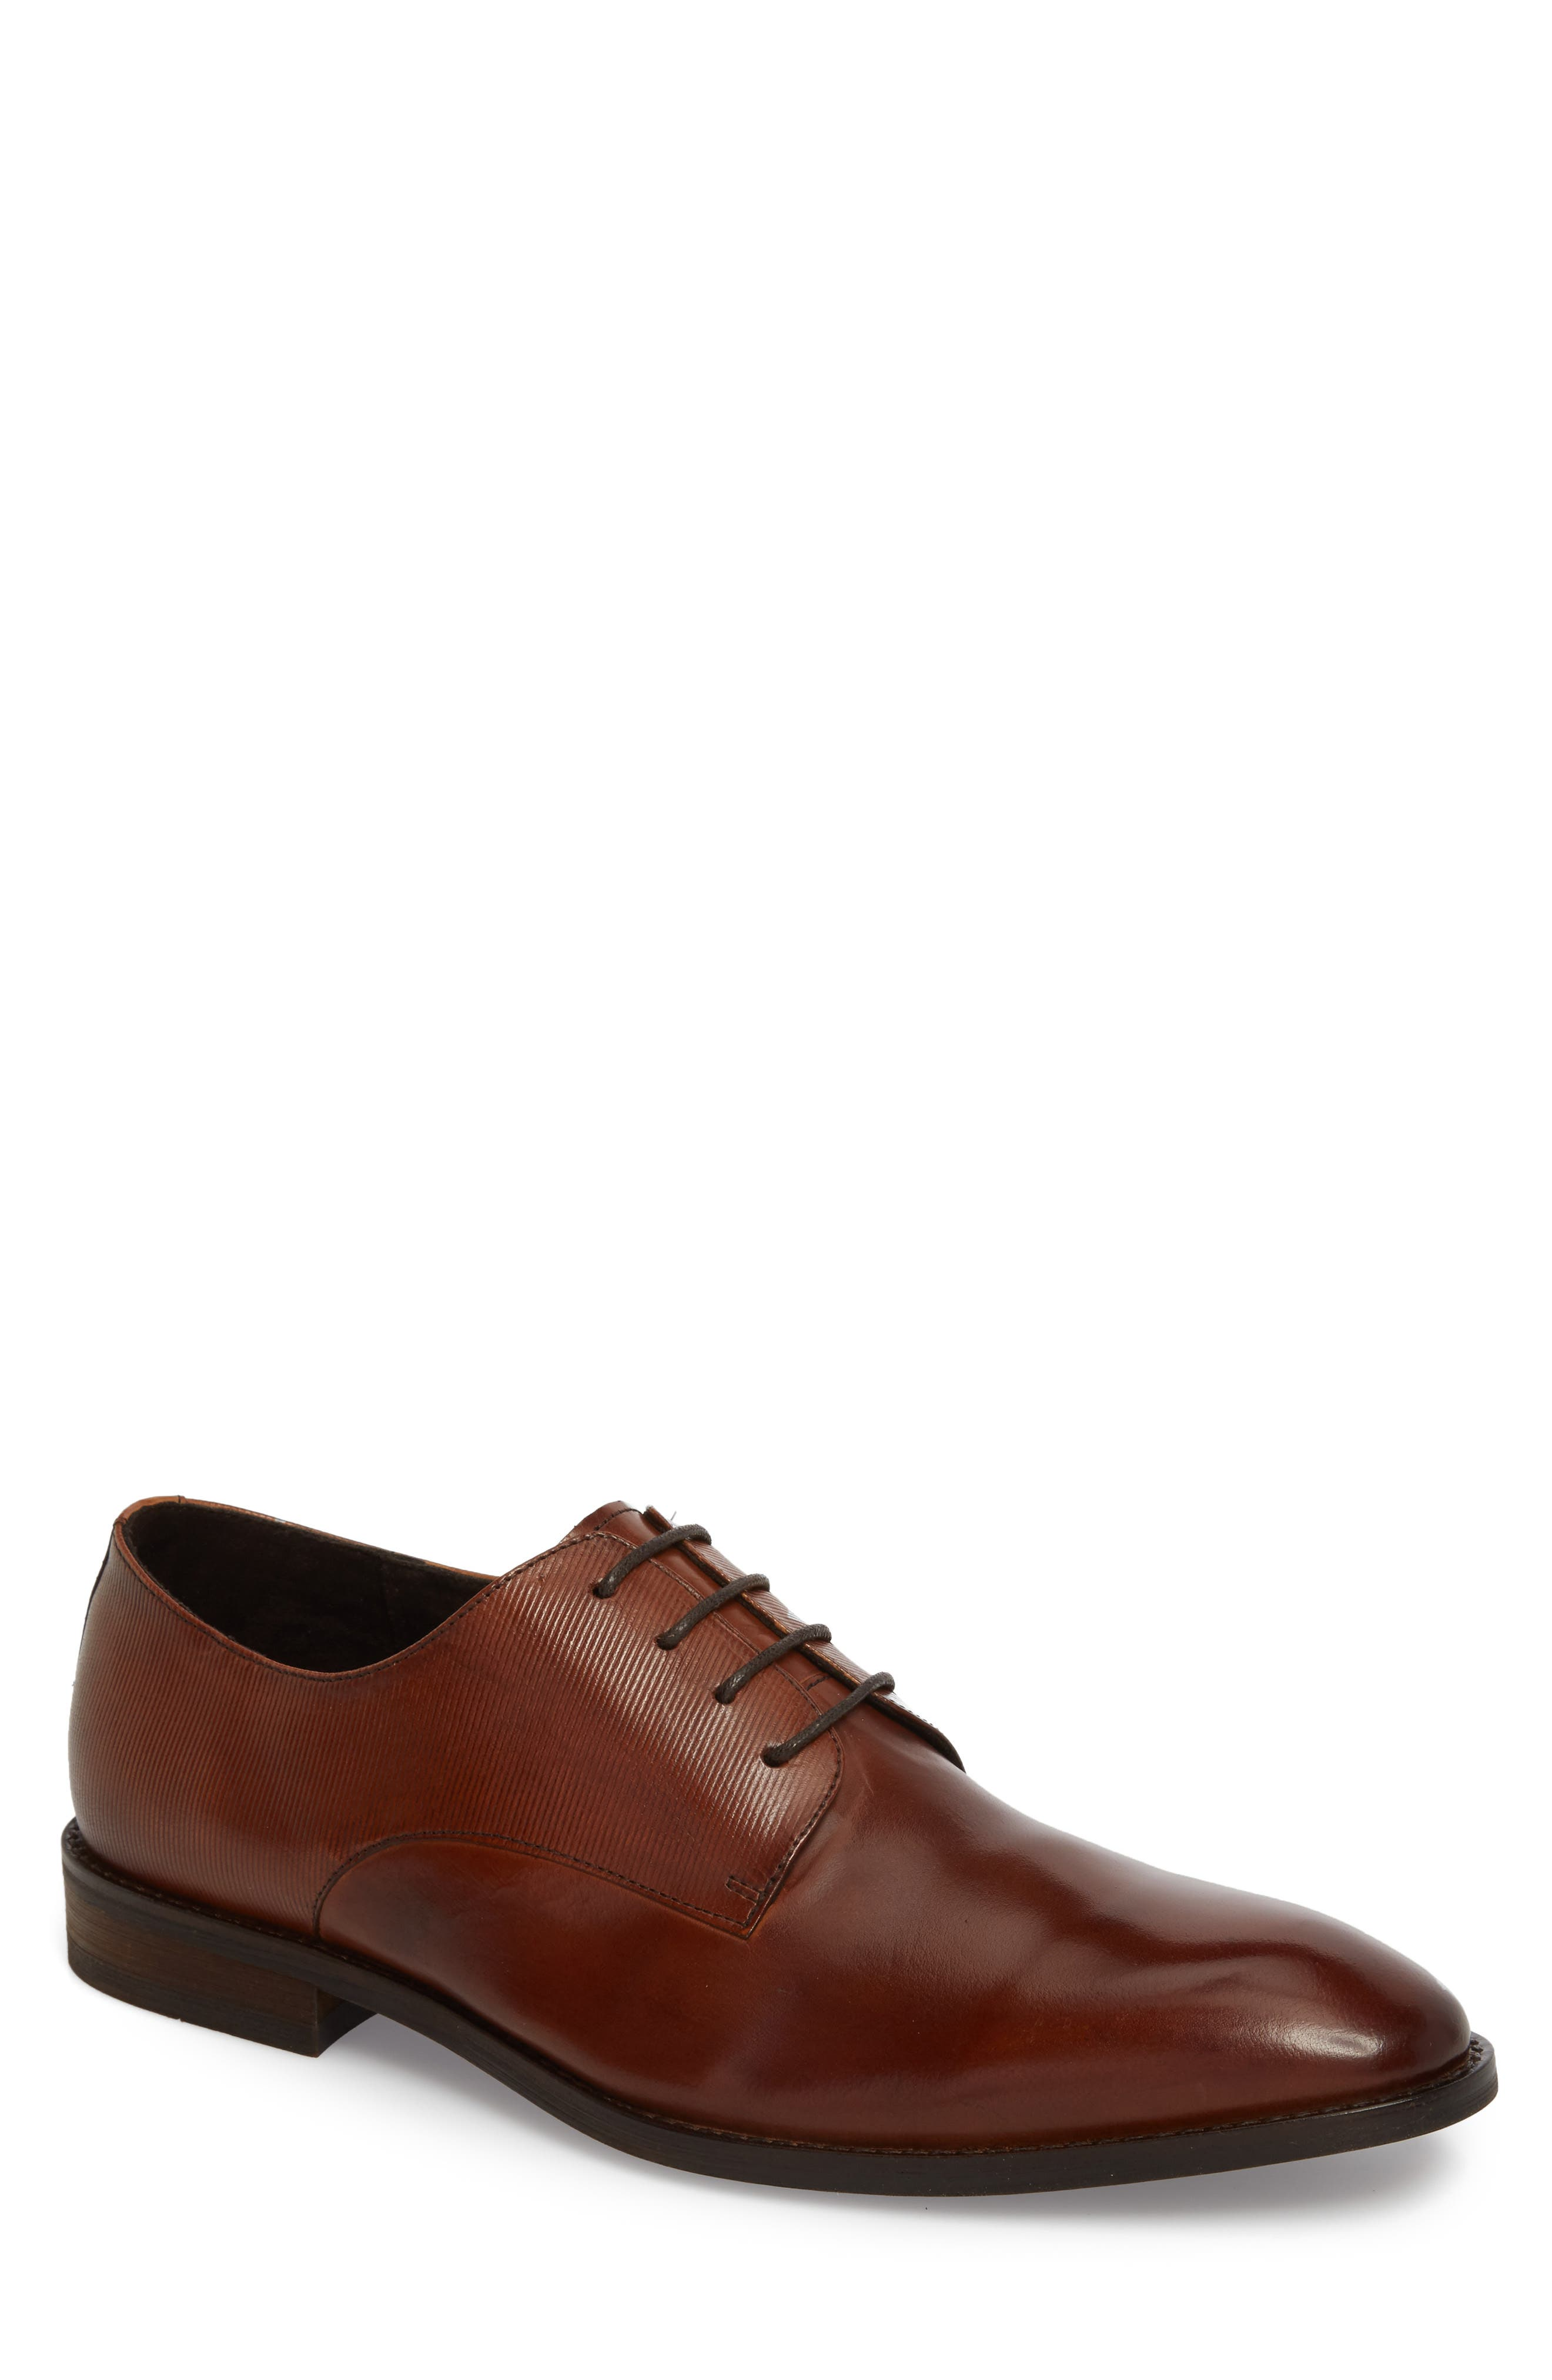 KENNETH COLE NEW YORK Courage Plain Toe Derby, Main, color, COGNAC LEATHER